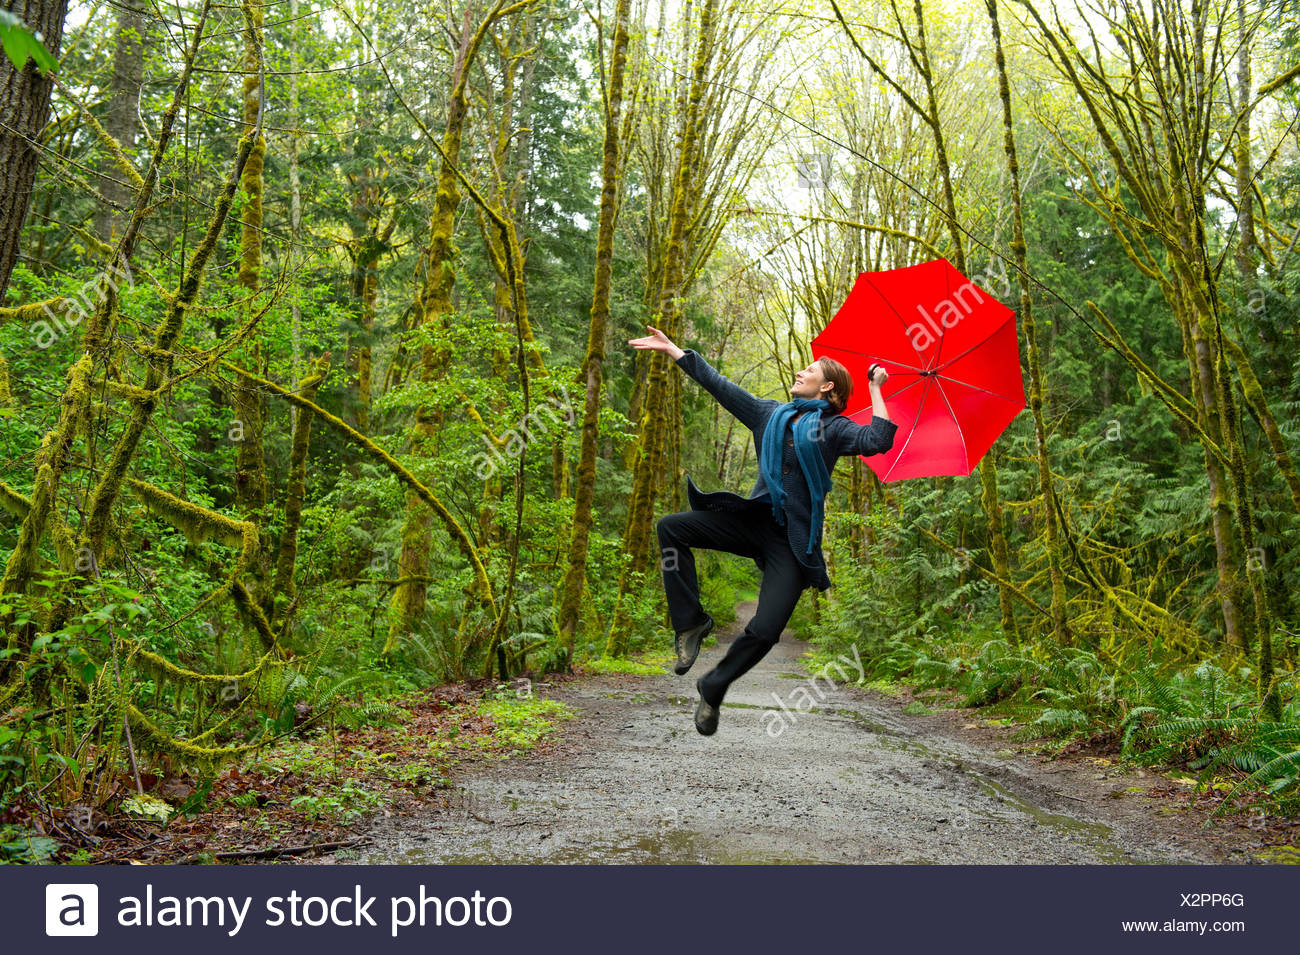 Jumping woman in forest with red umbrella - Stock Image